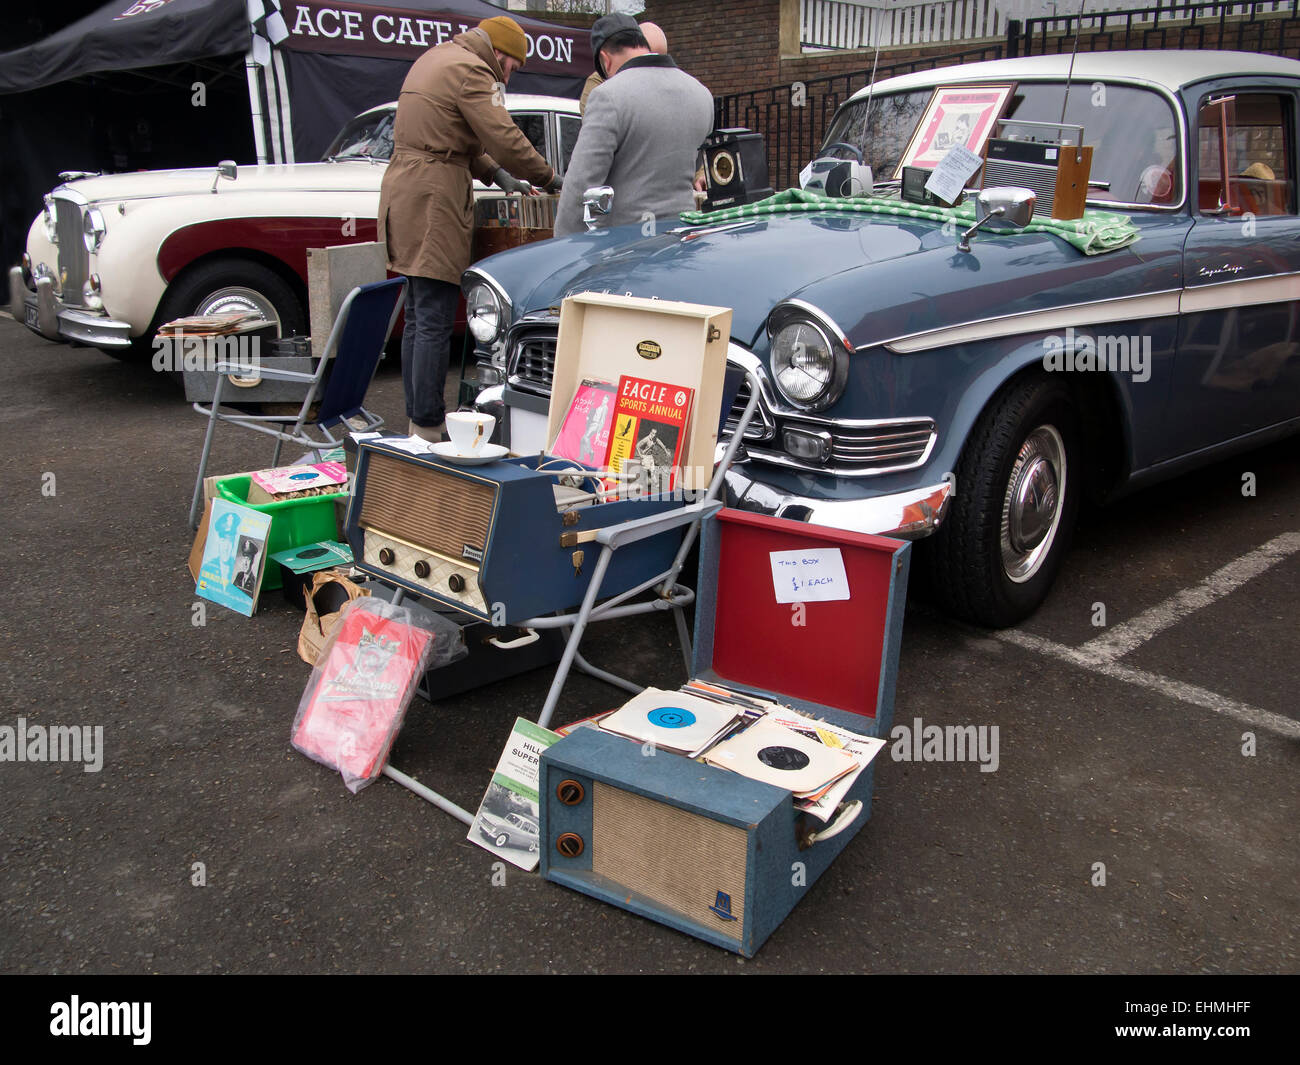 London, UK. 15th Mar, 2015. Stall at the Classic car boot sale ...